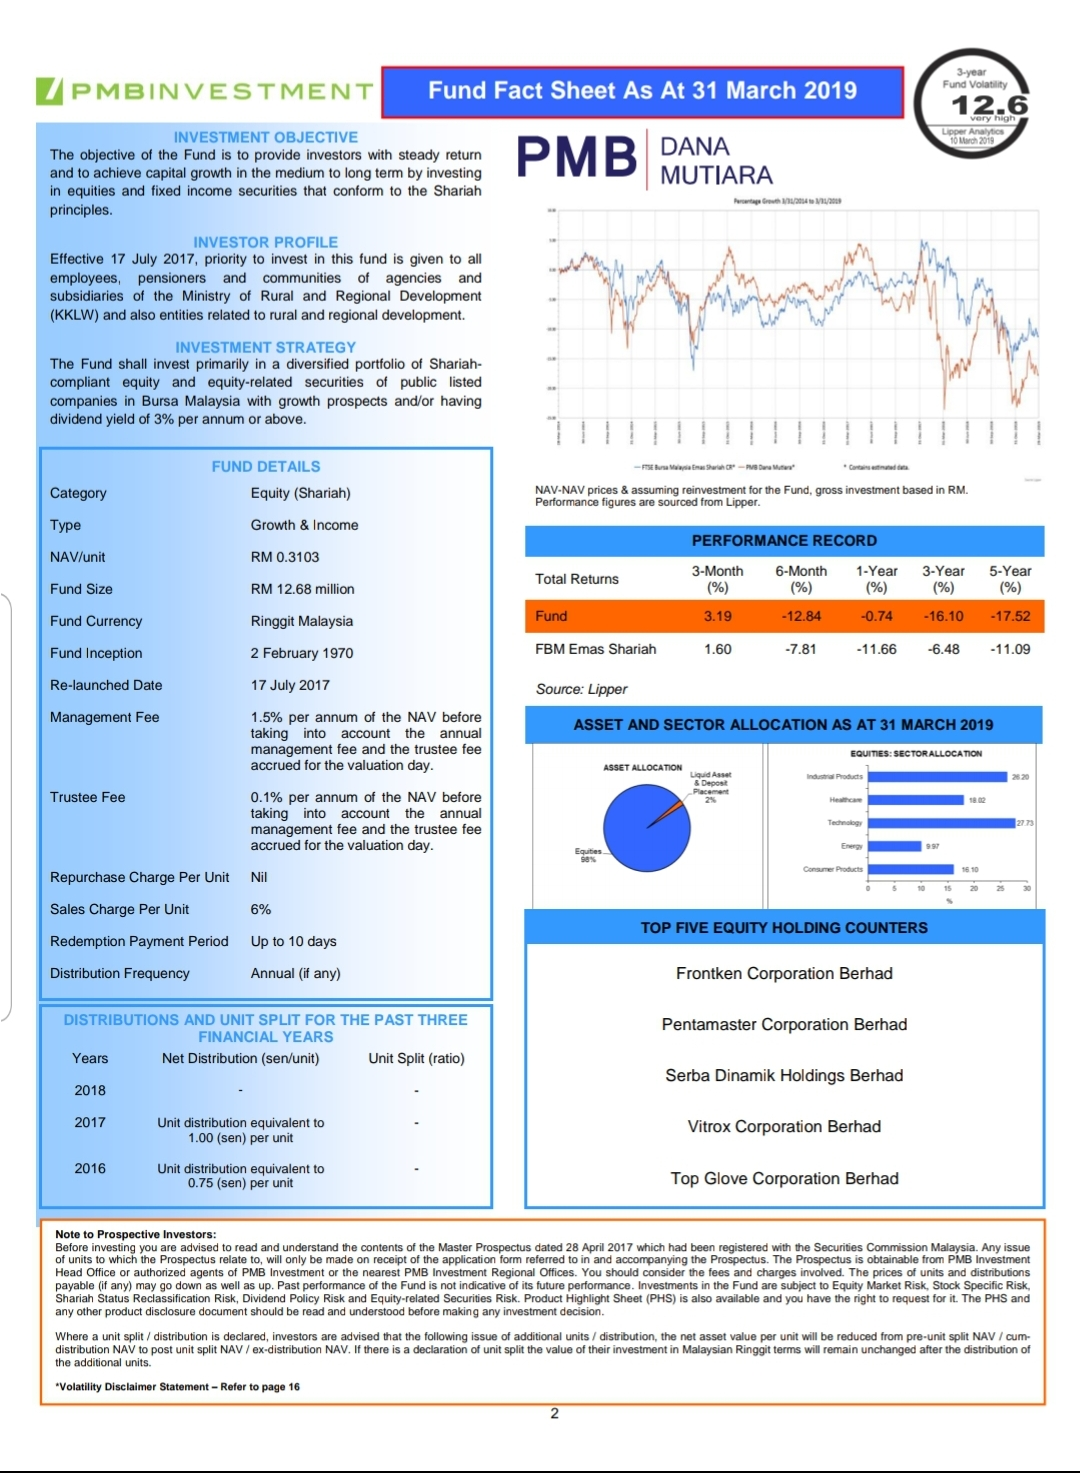 Consultants Pmb Investment Fund Fact Sheet Ended 31 March 2019 Pmb Shariah Mutiara Fund